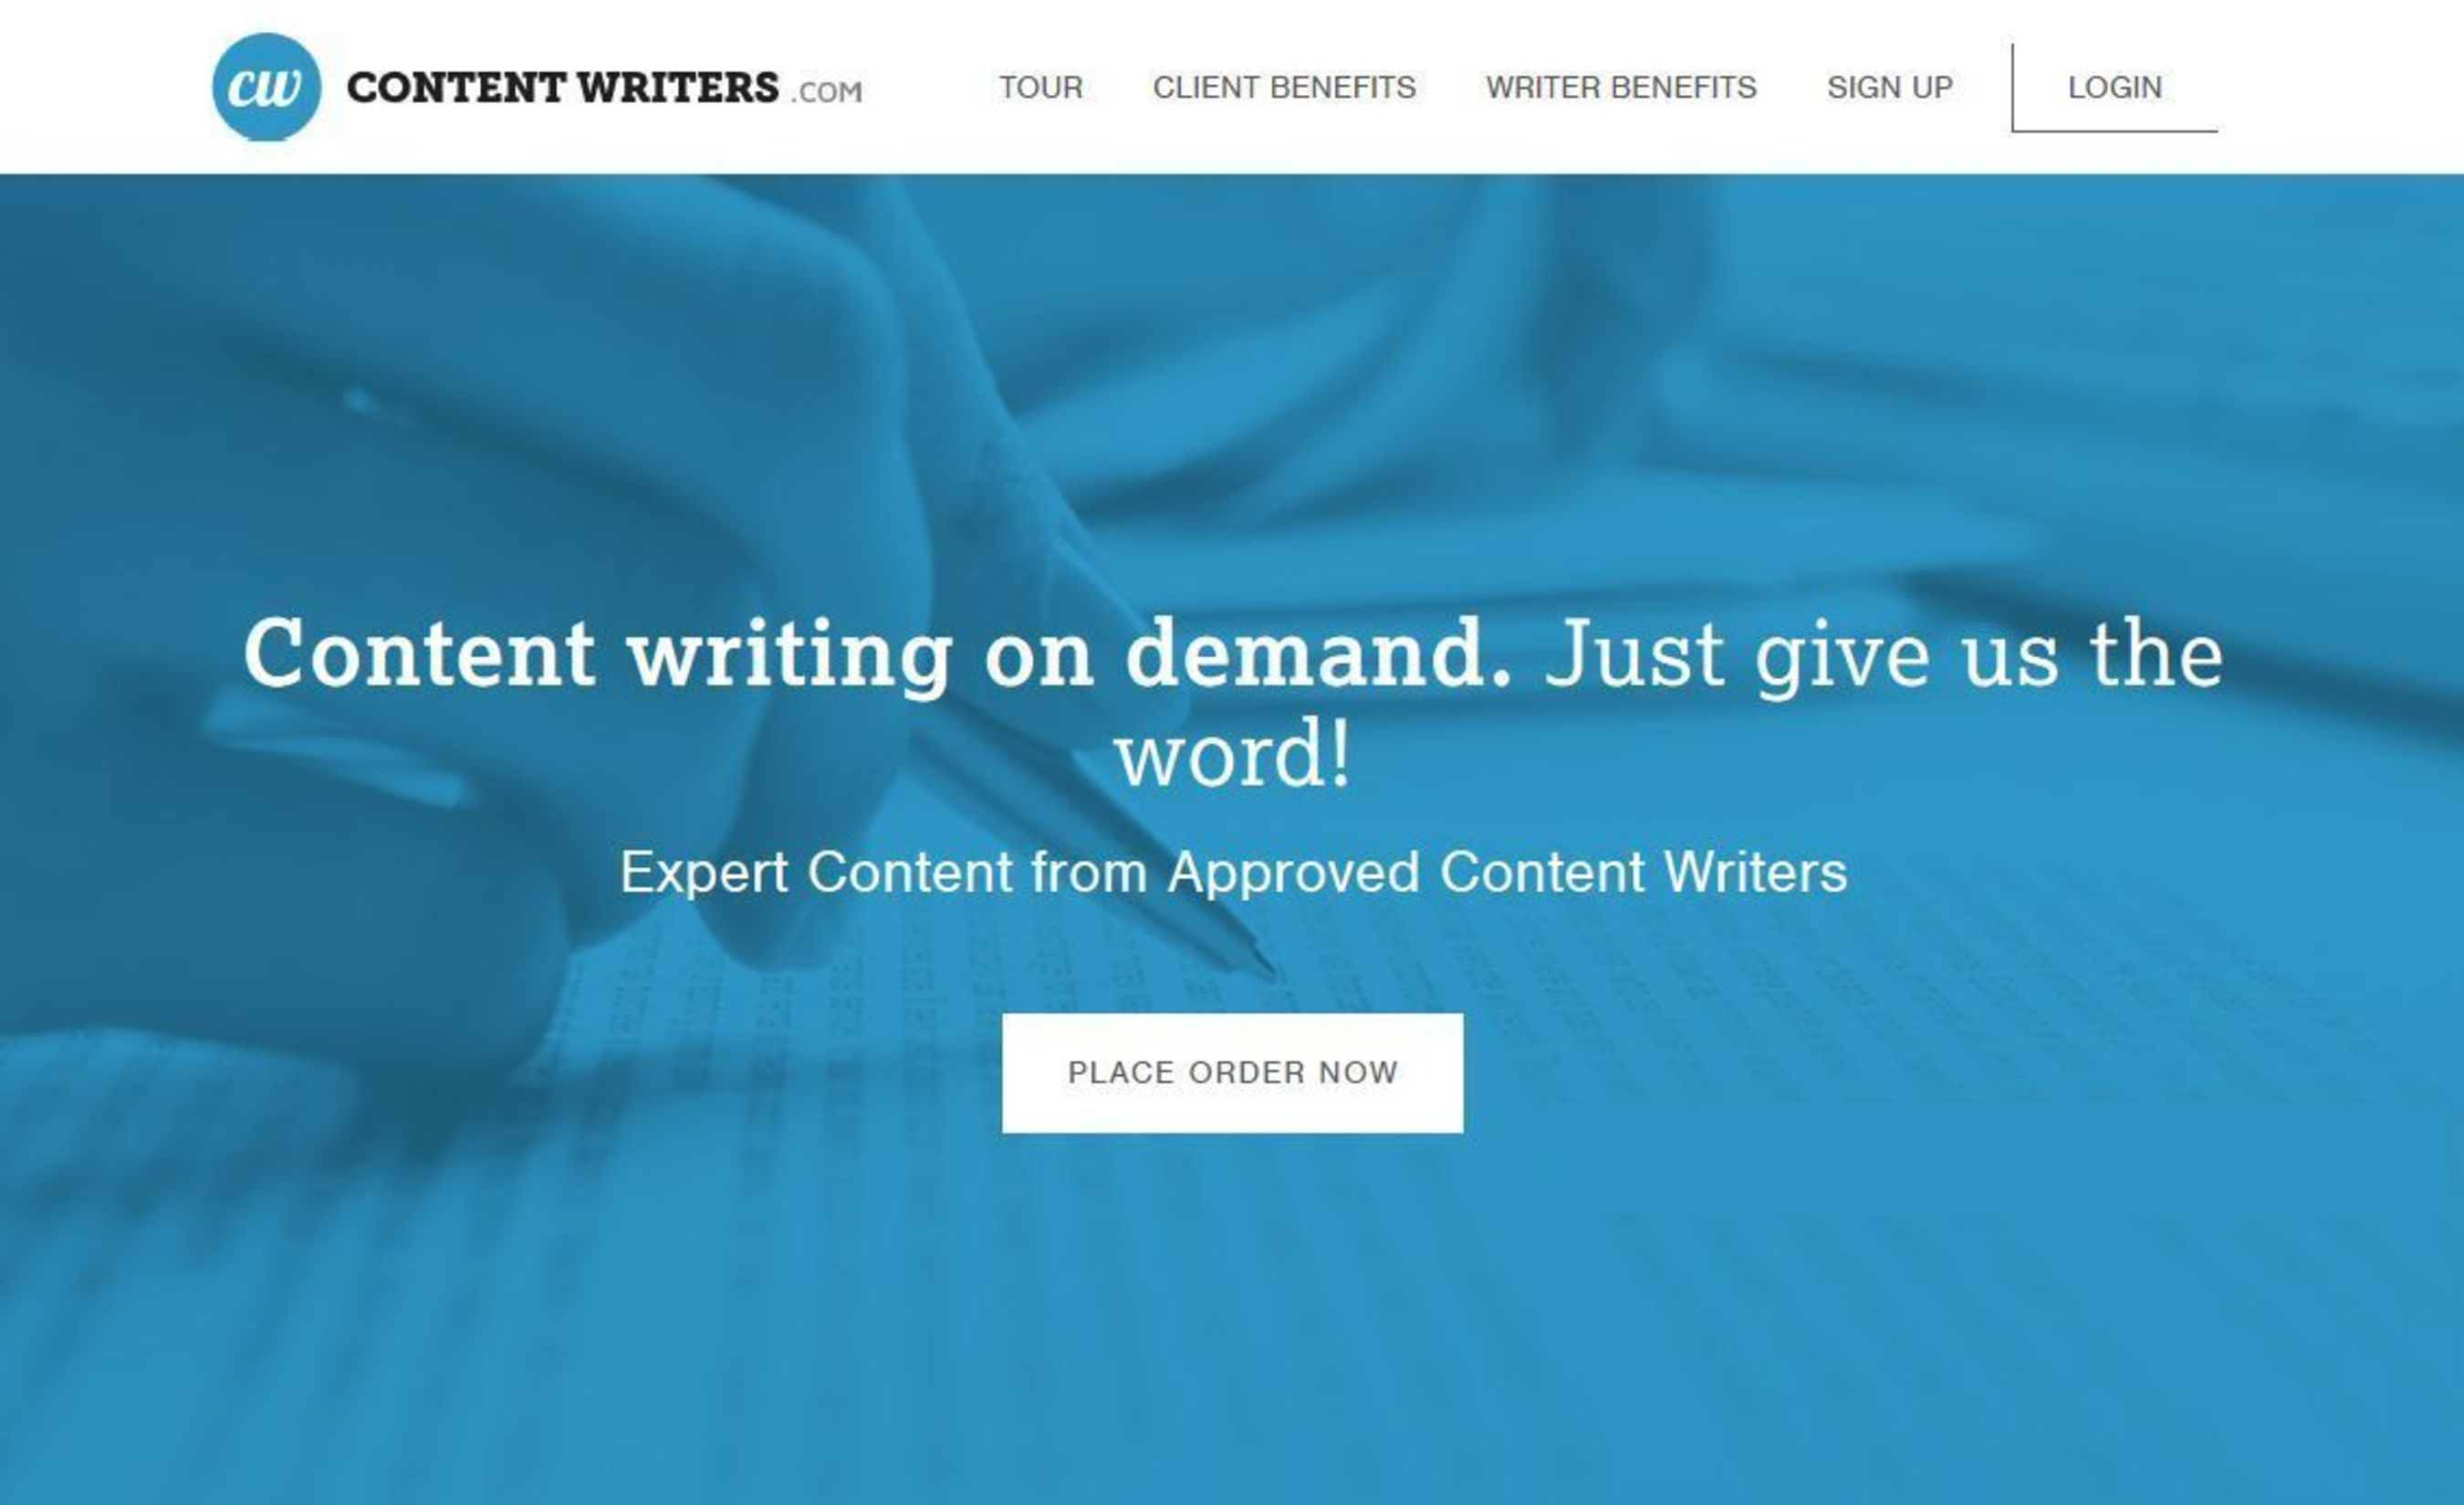 ContentWriters Builds Elite U.S.-Based Writing Team to Support High-Quality Content Demand